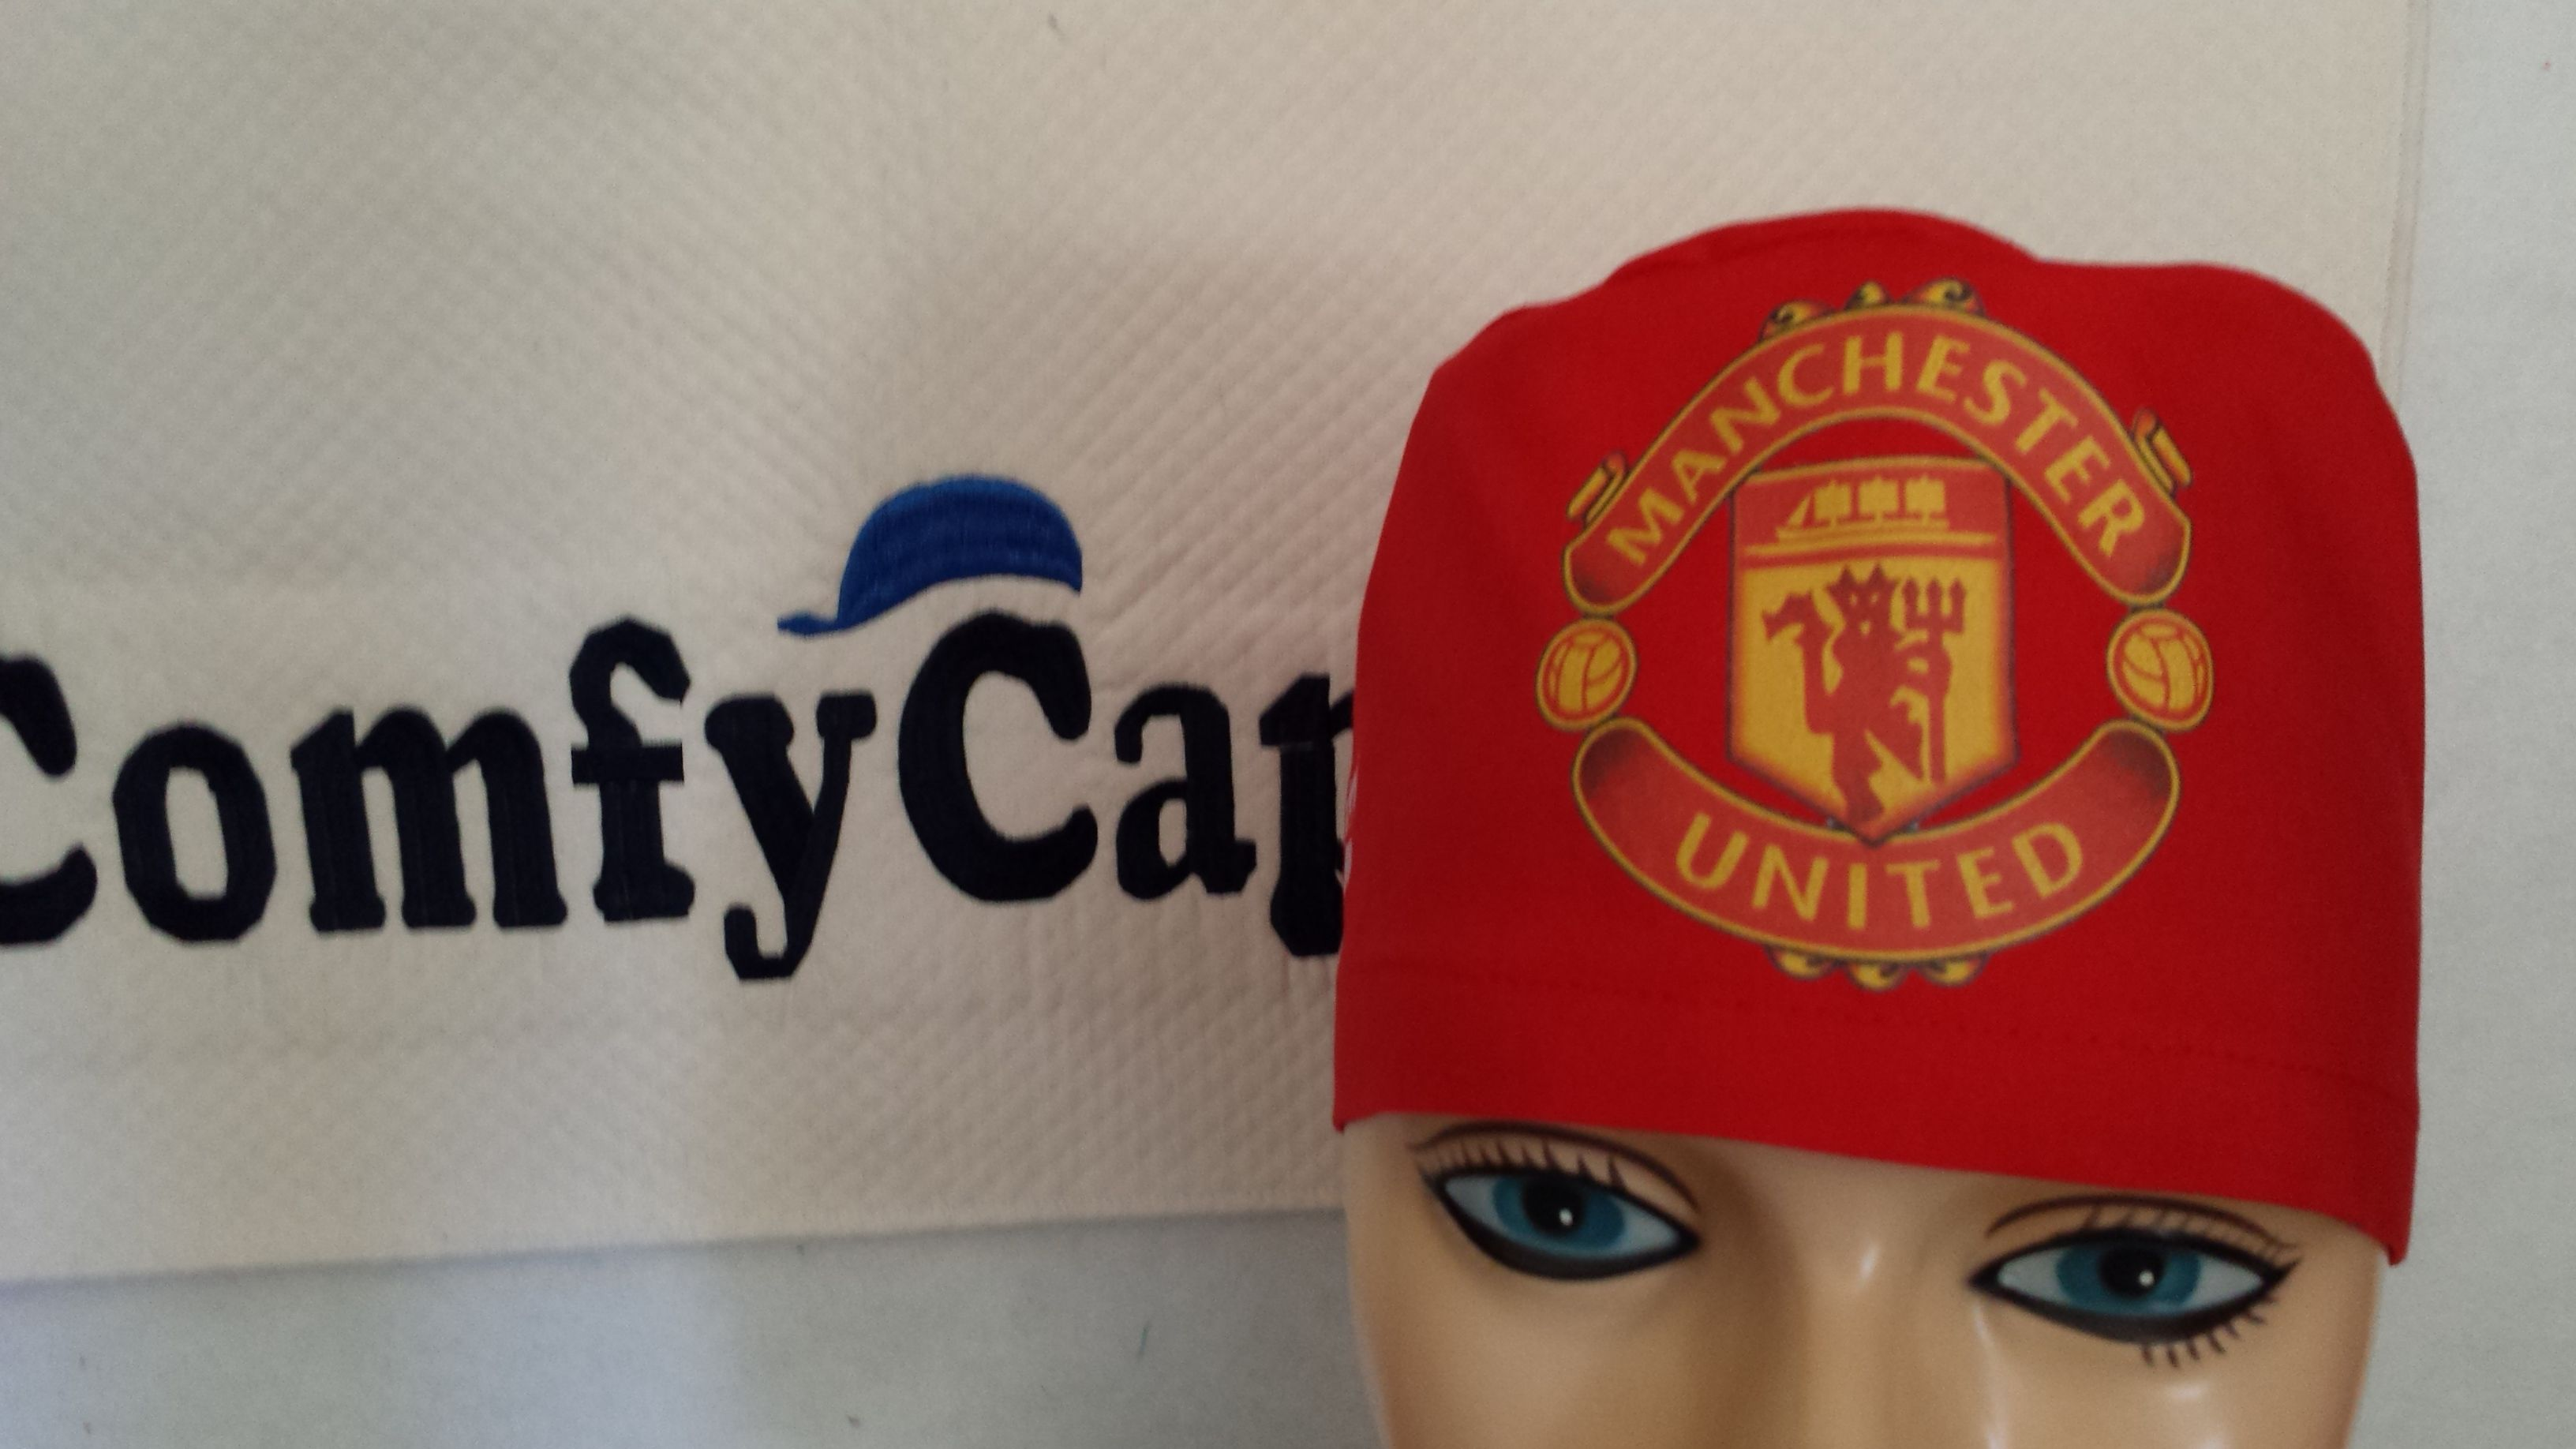 05f81be2 Custom imprinted male scrub cap with Manchester United logo on the front.